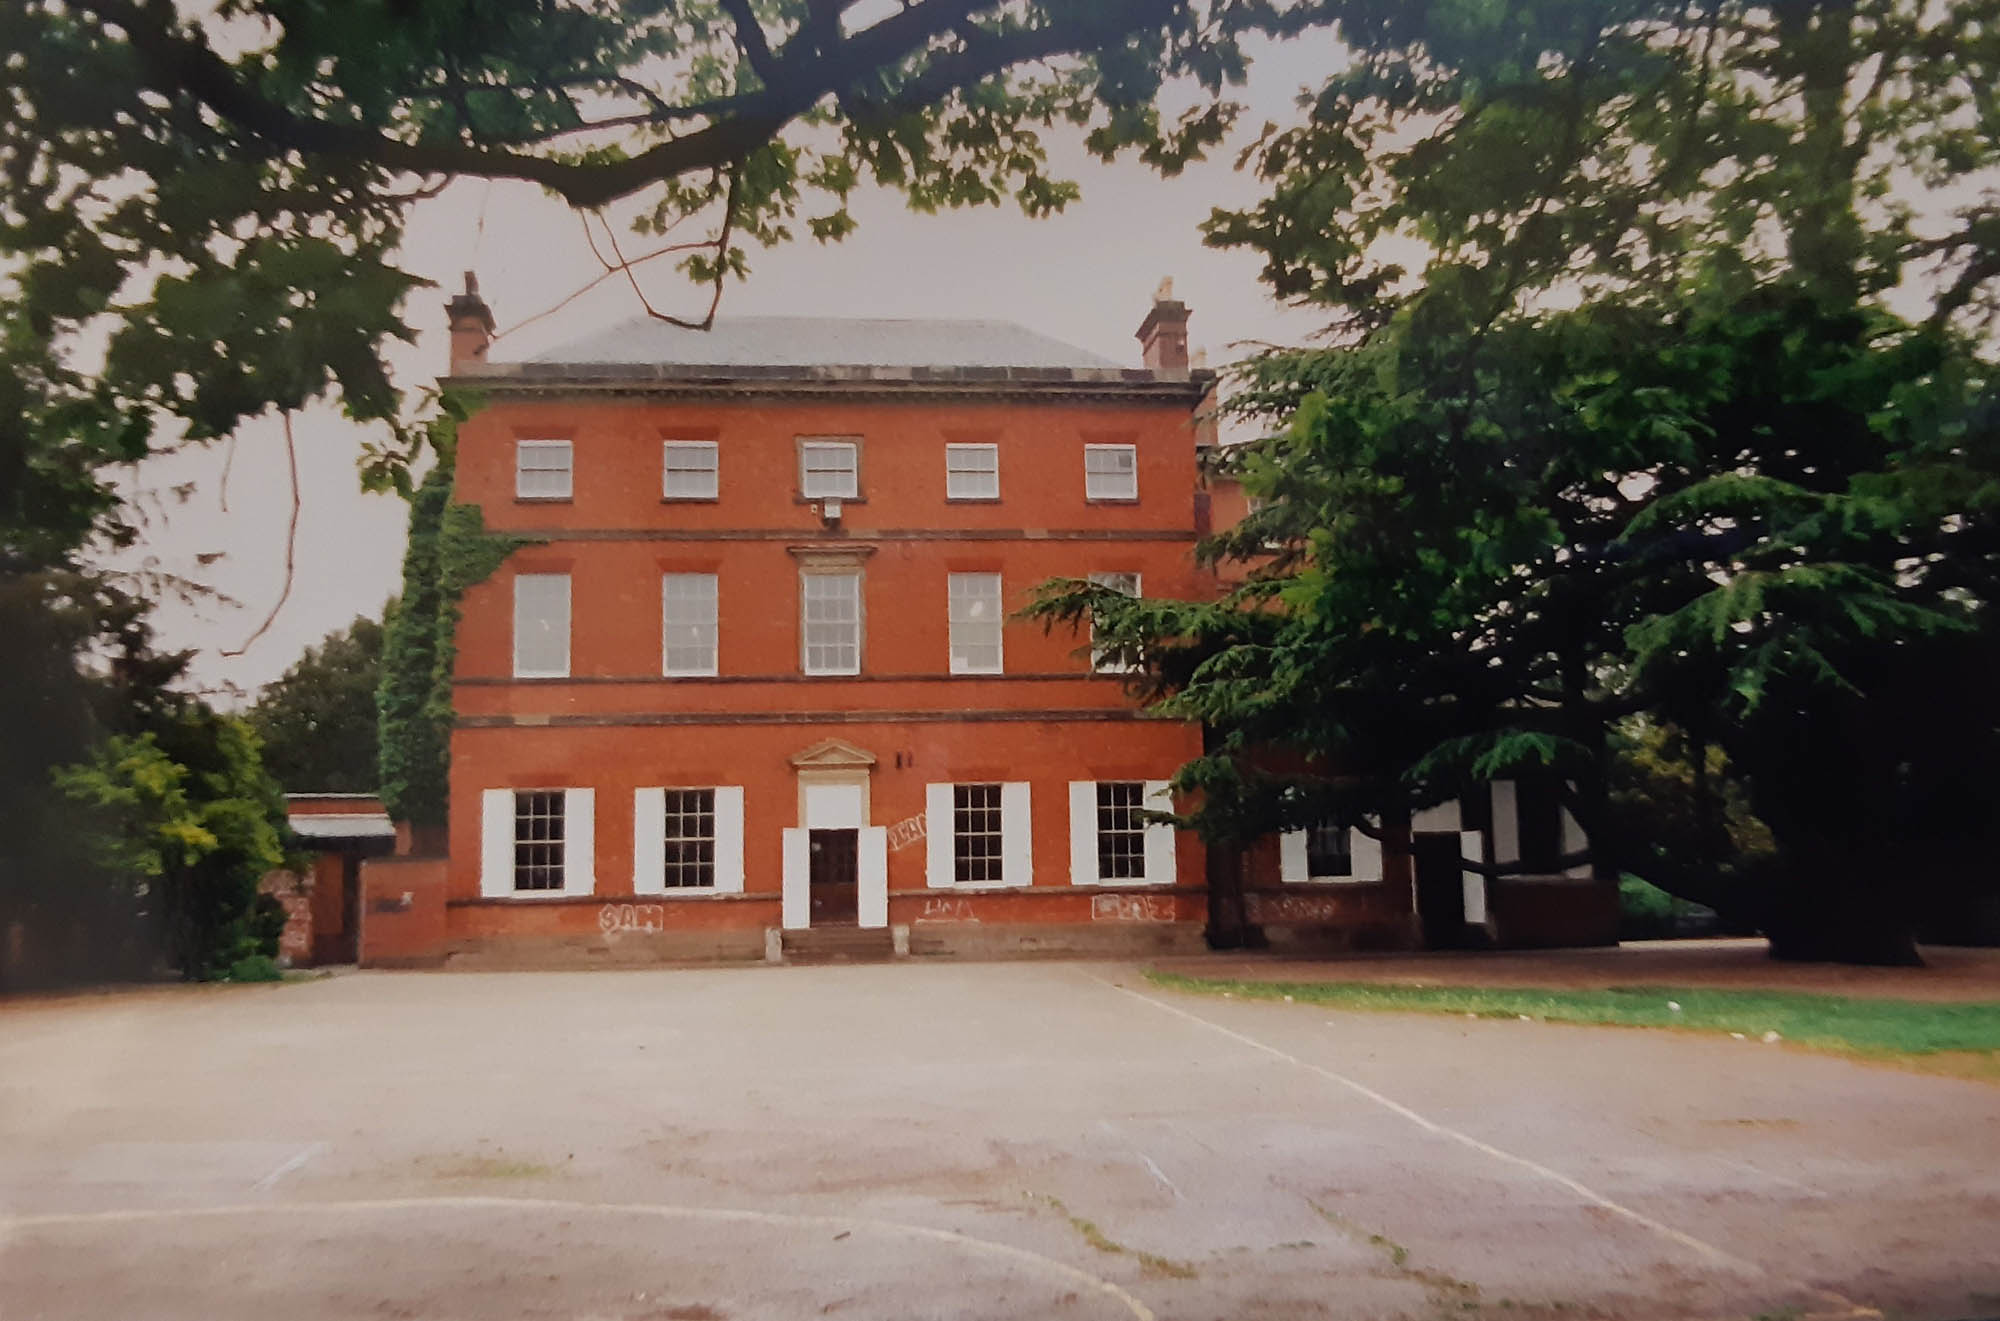 Back of the School in 1996 - Braunstone History Group